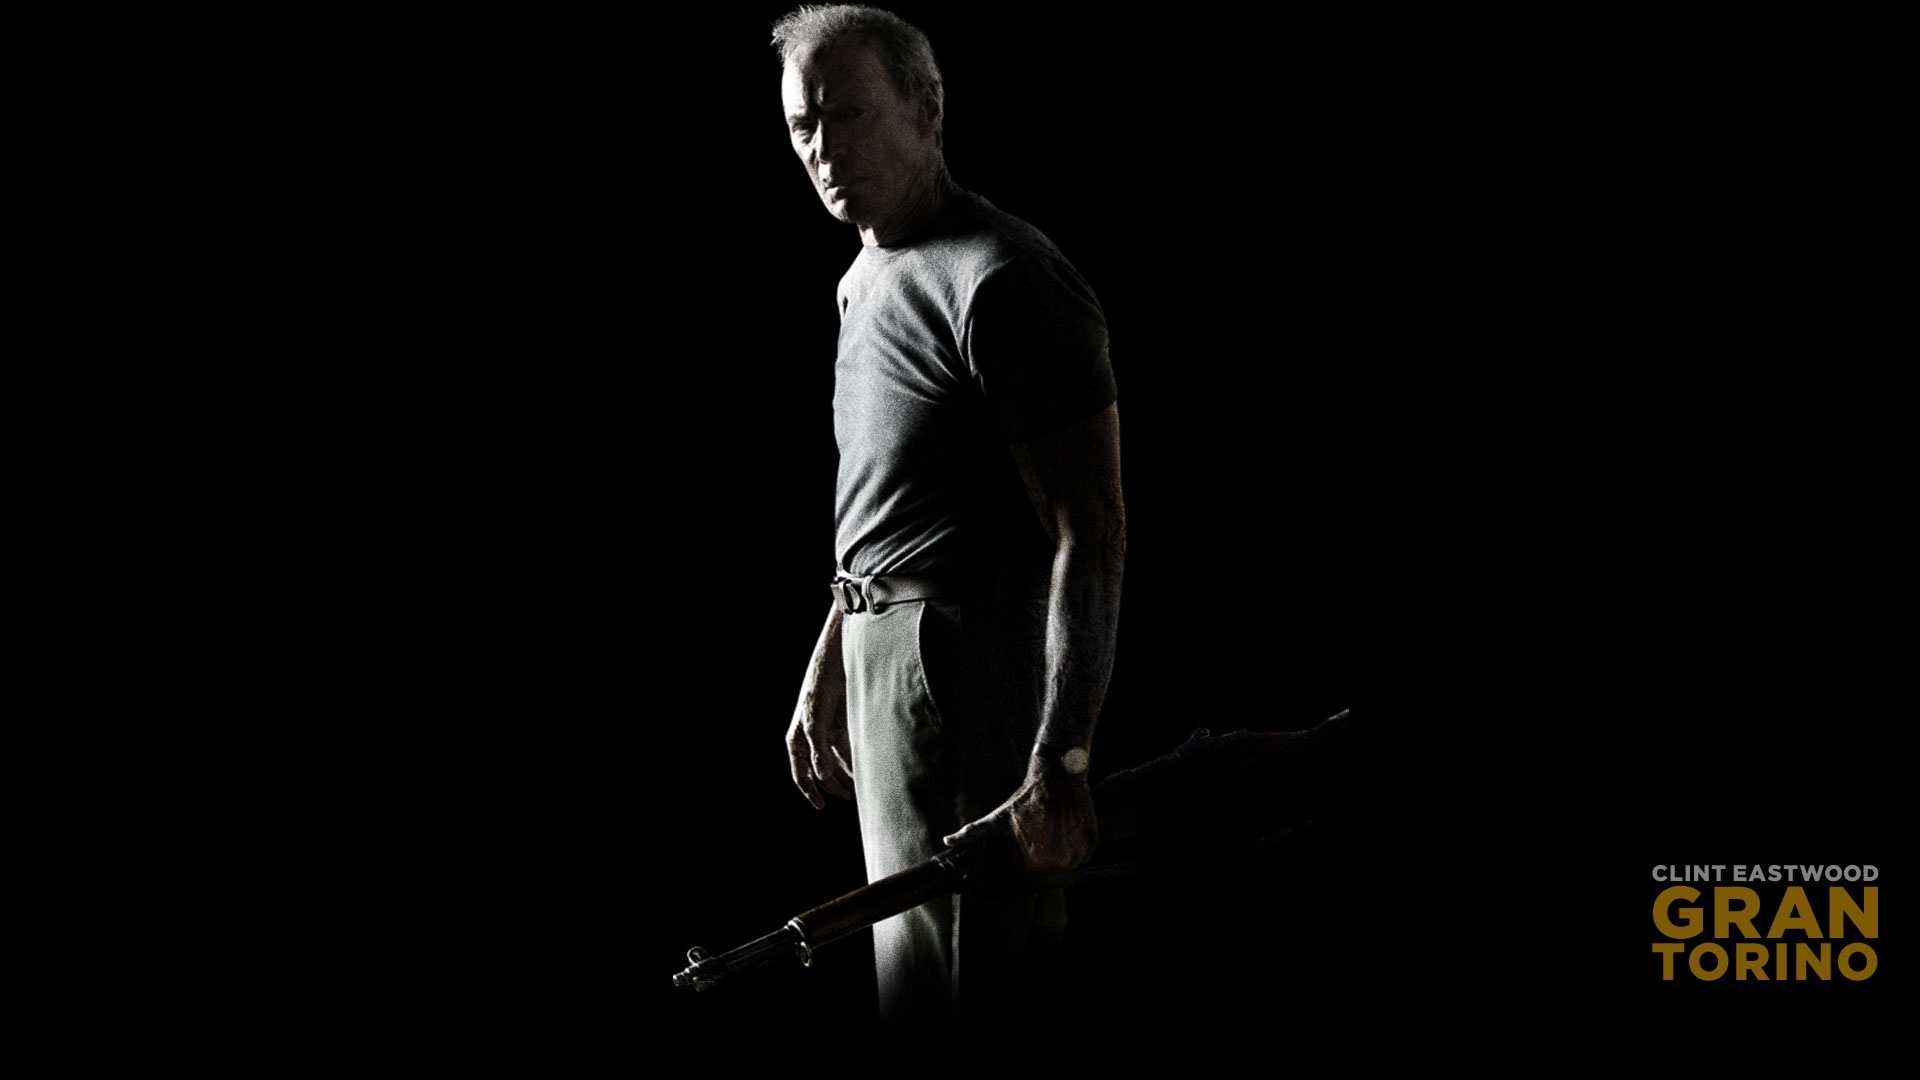 Guns Movies clint eastwood HD Wallpaper